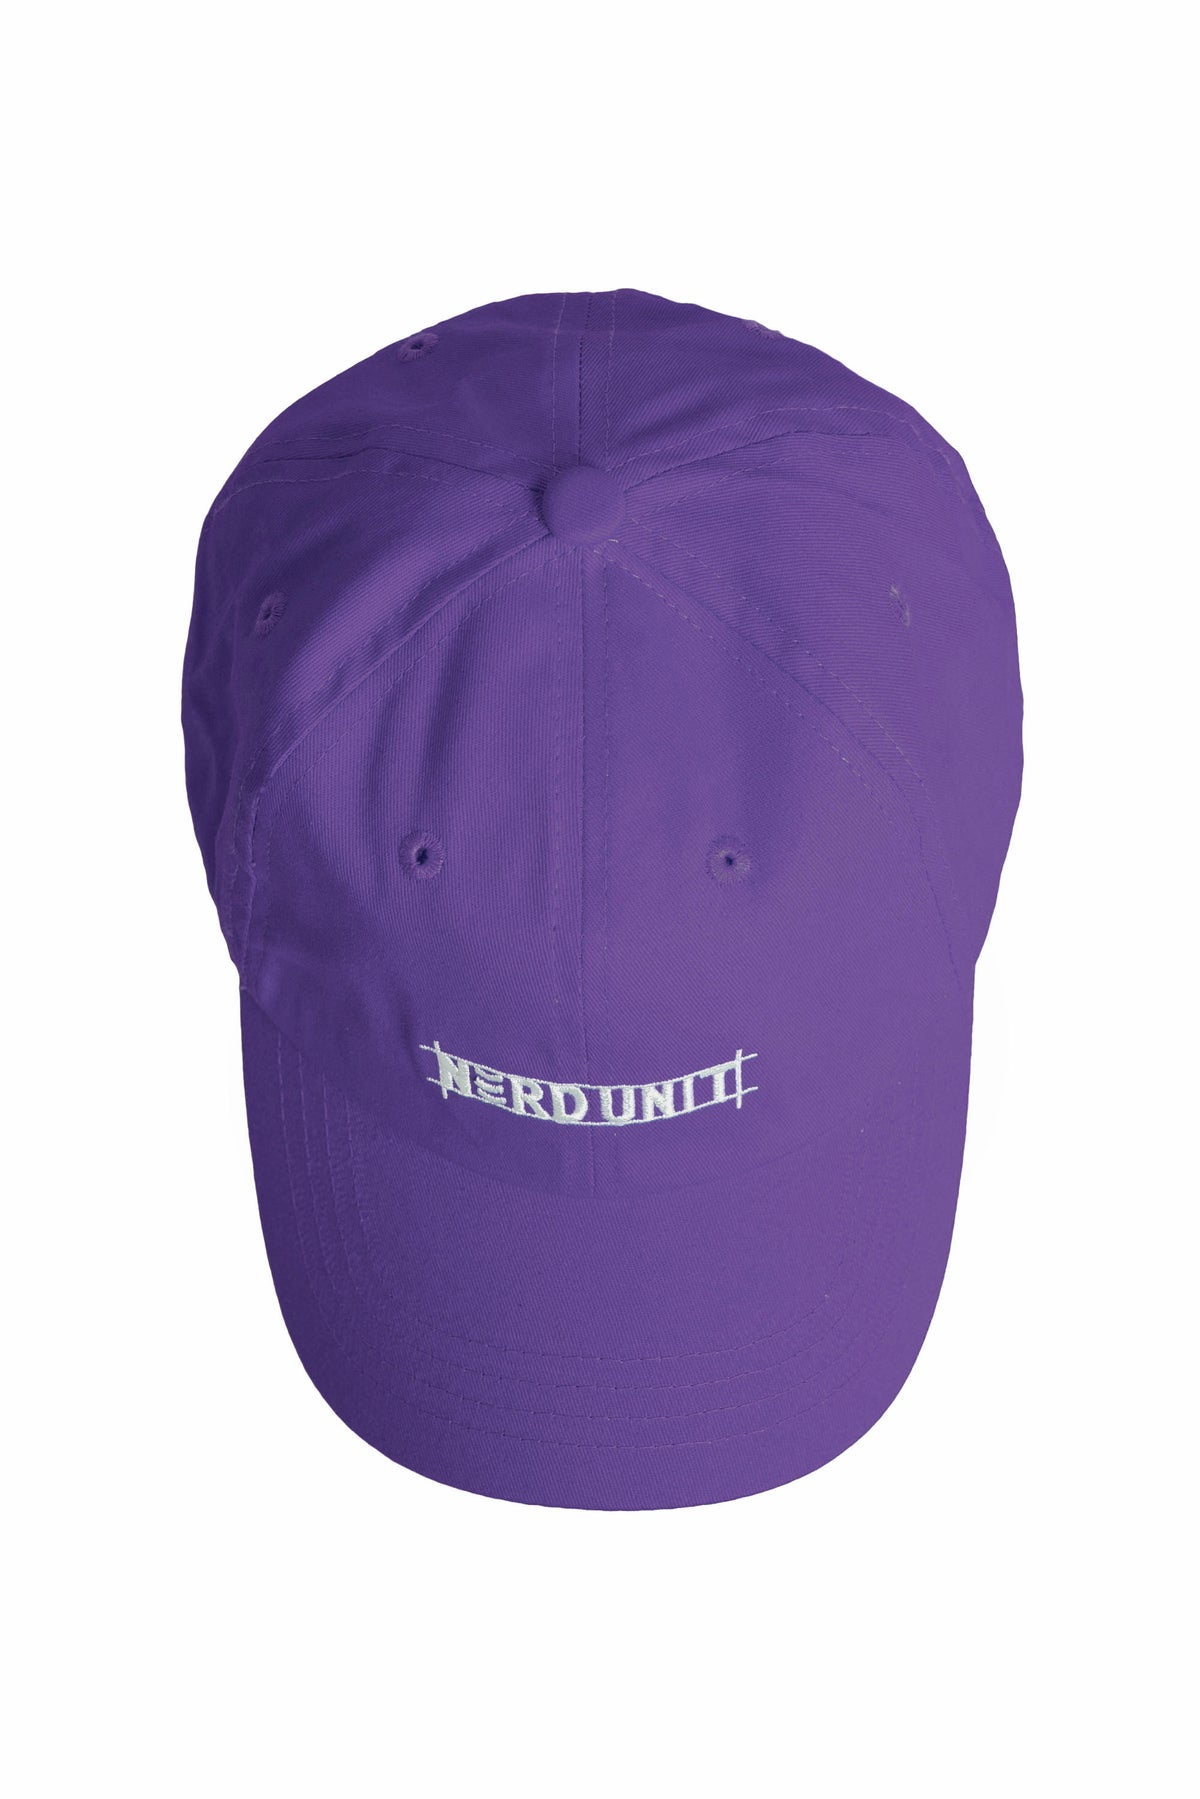 """DRAFT"" DAD CAP"